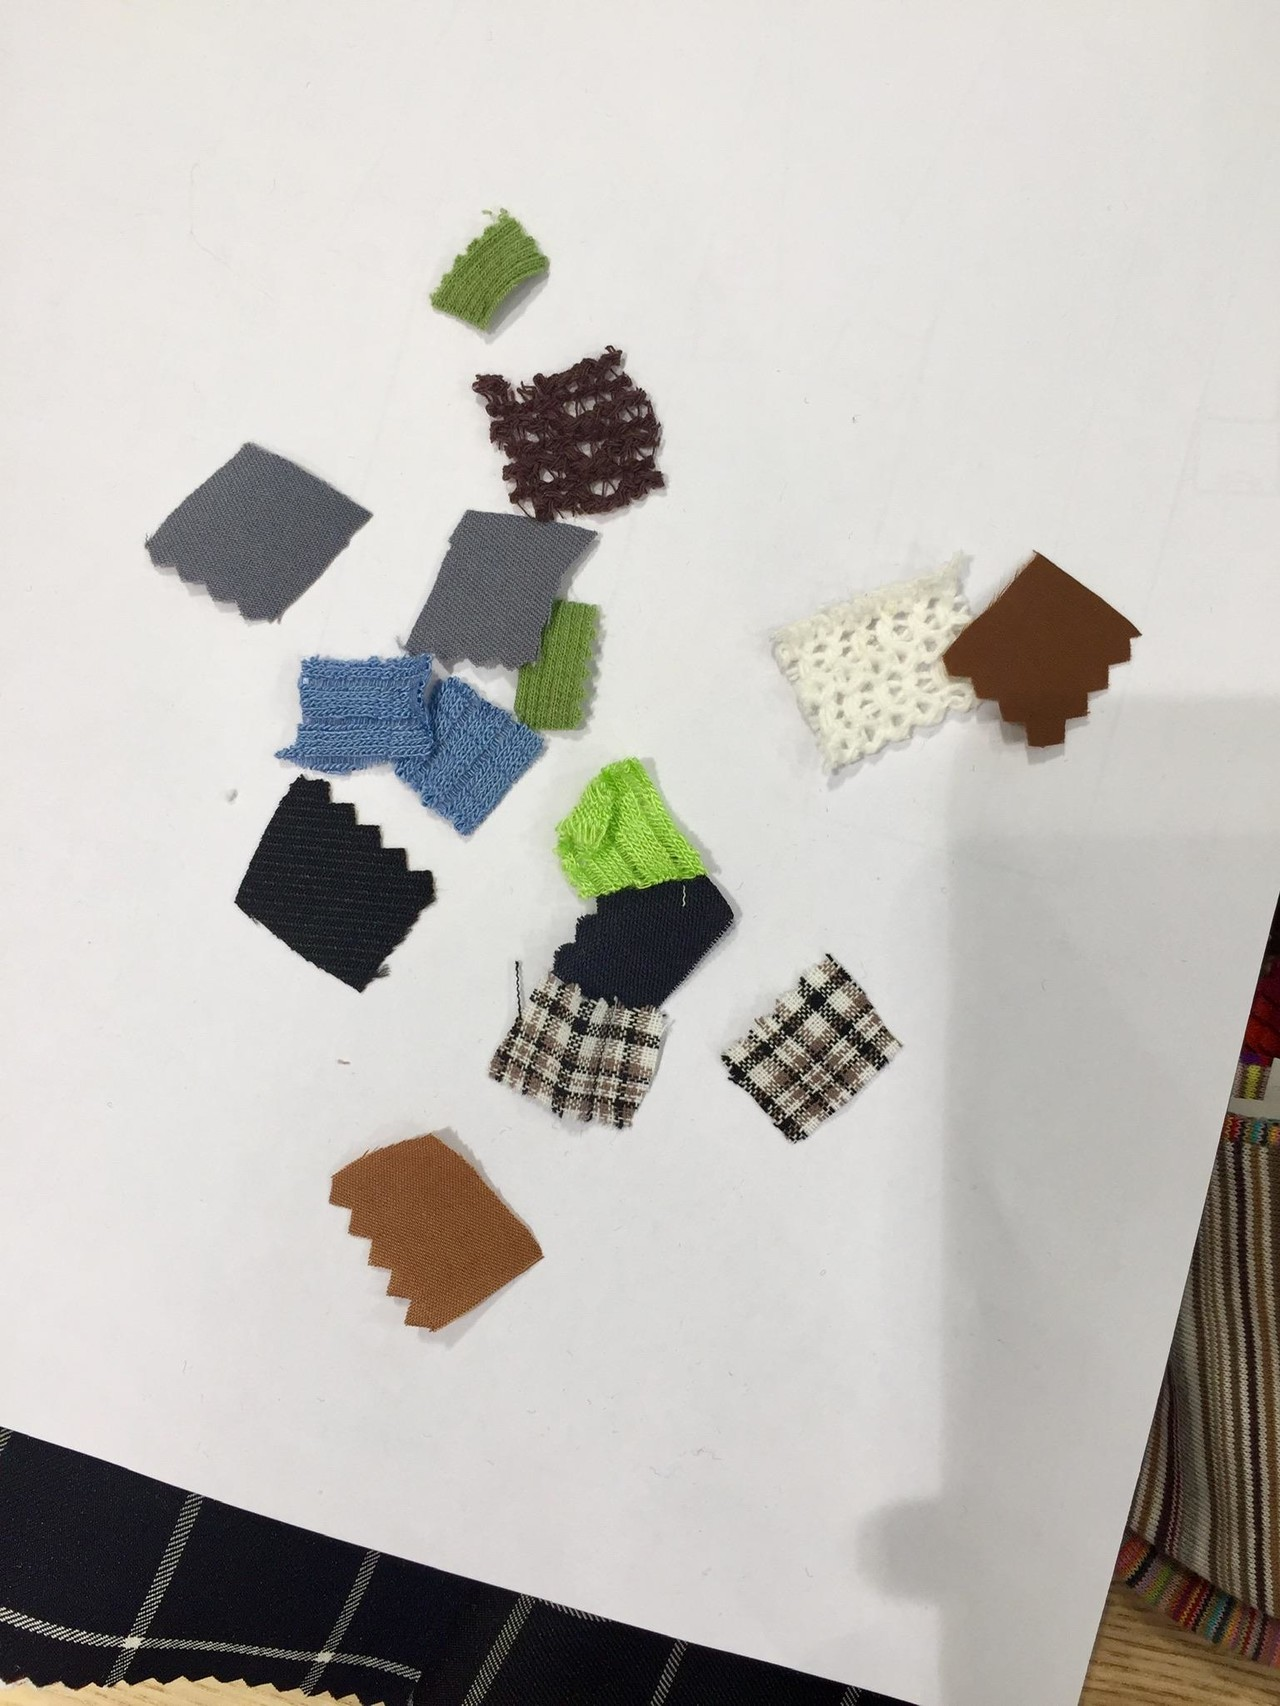 Small pieces of fabric